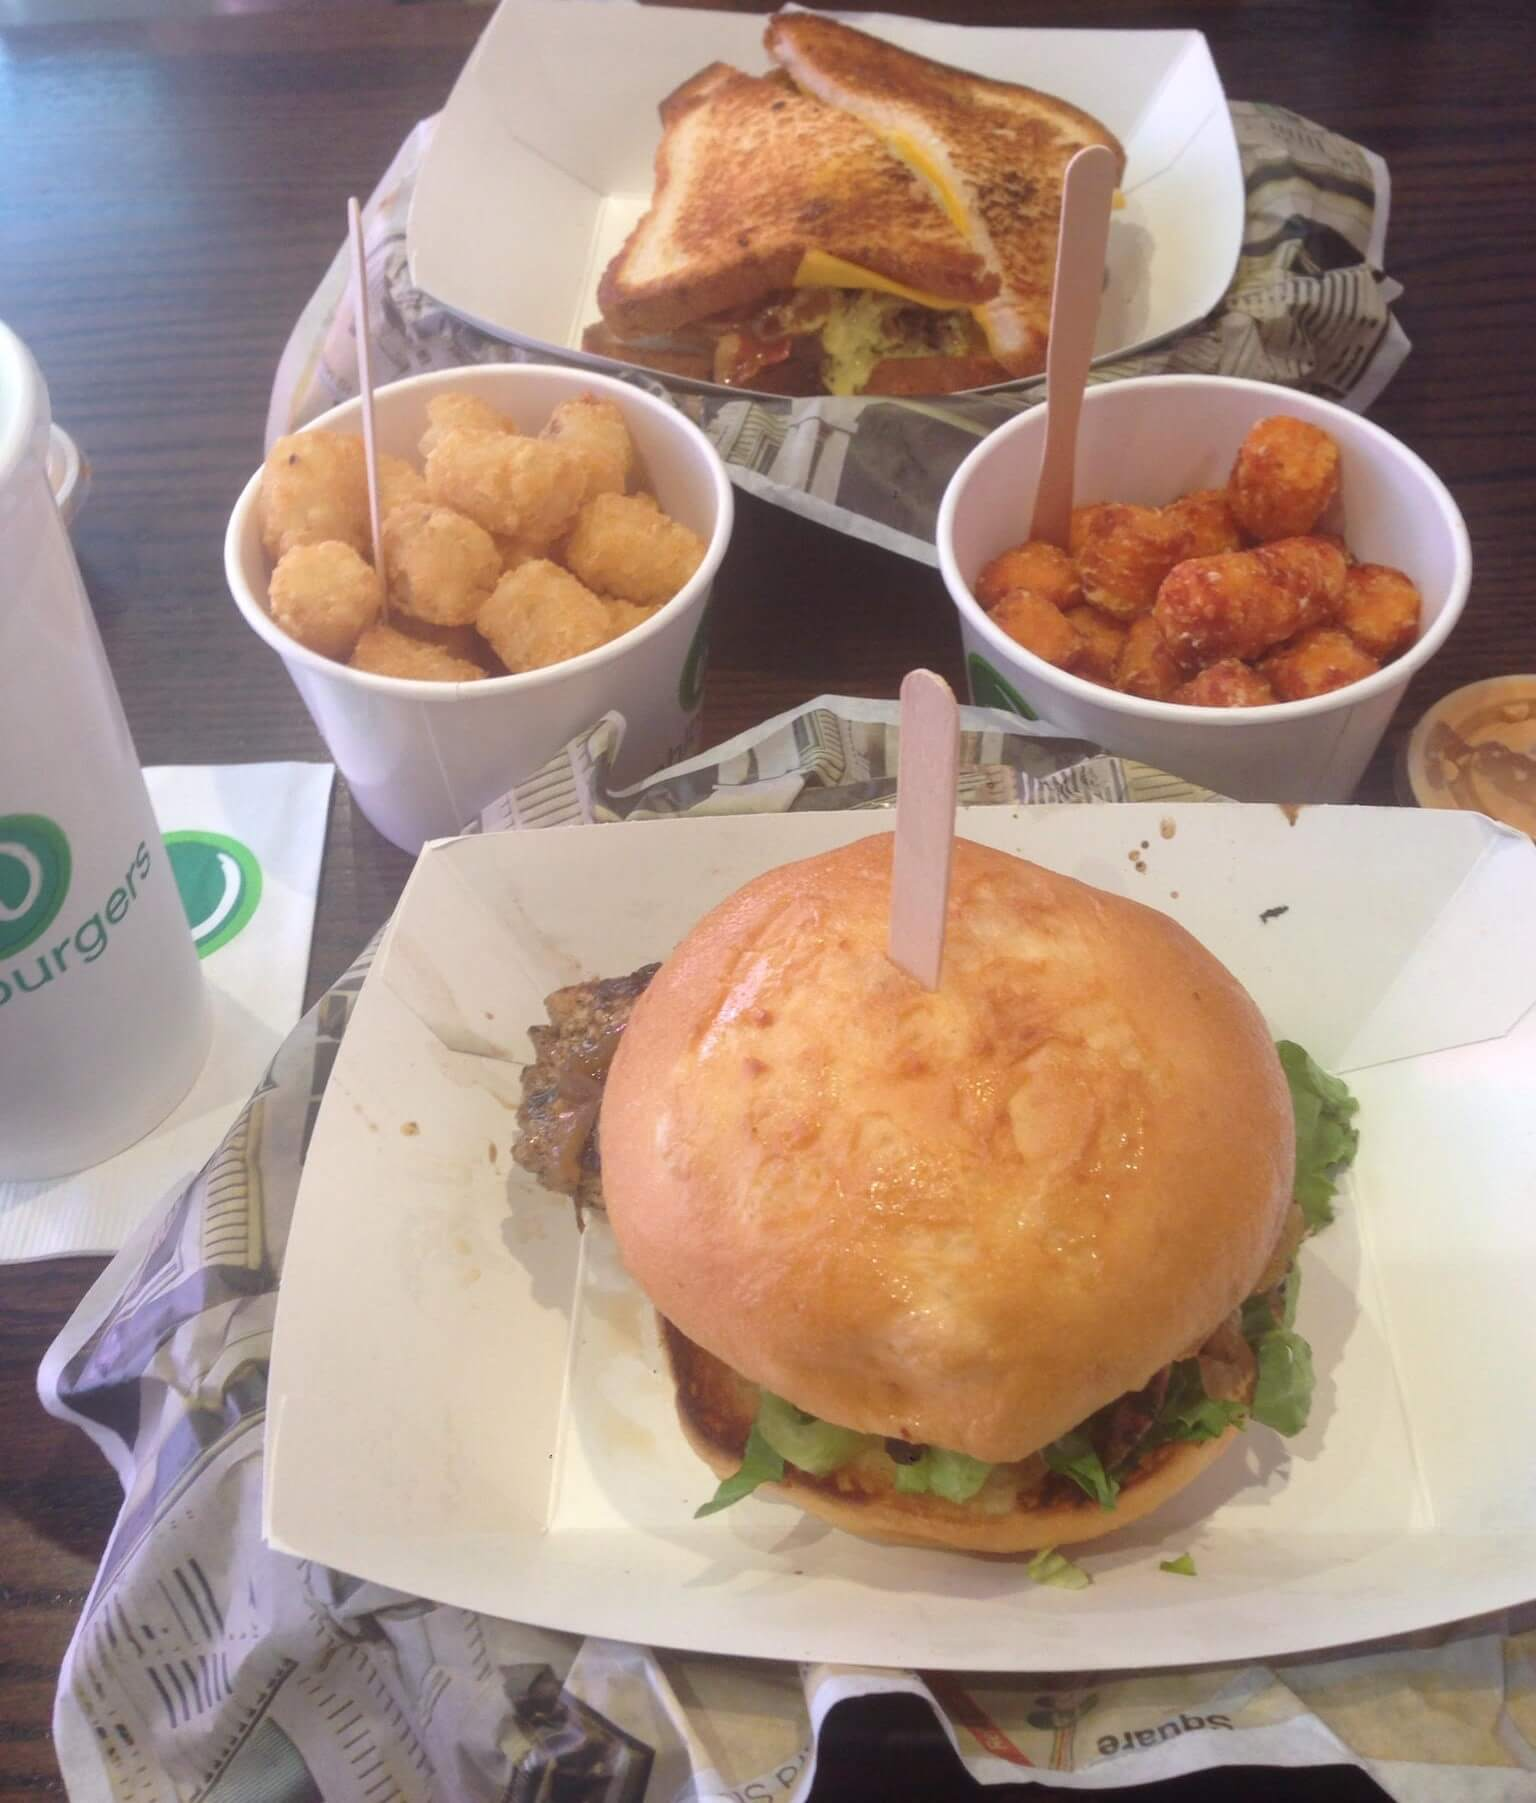 Lunch at Wahlburgers